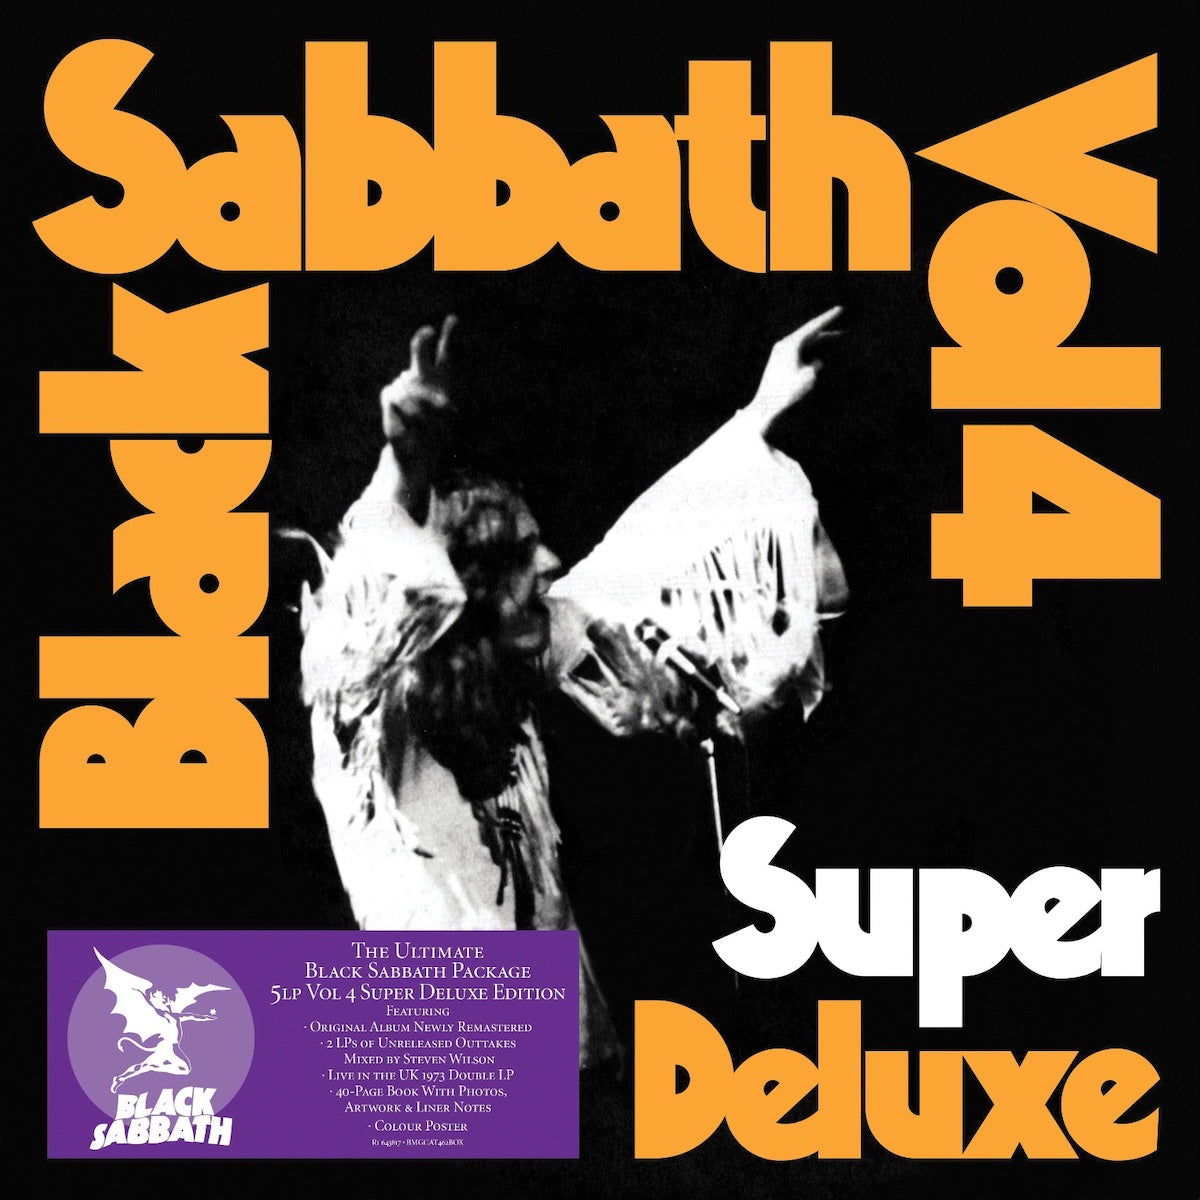 Black Sabbath - Vol. 4 Super Deluxe 5LP Vinyl Record Box Set